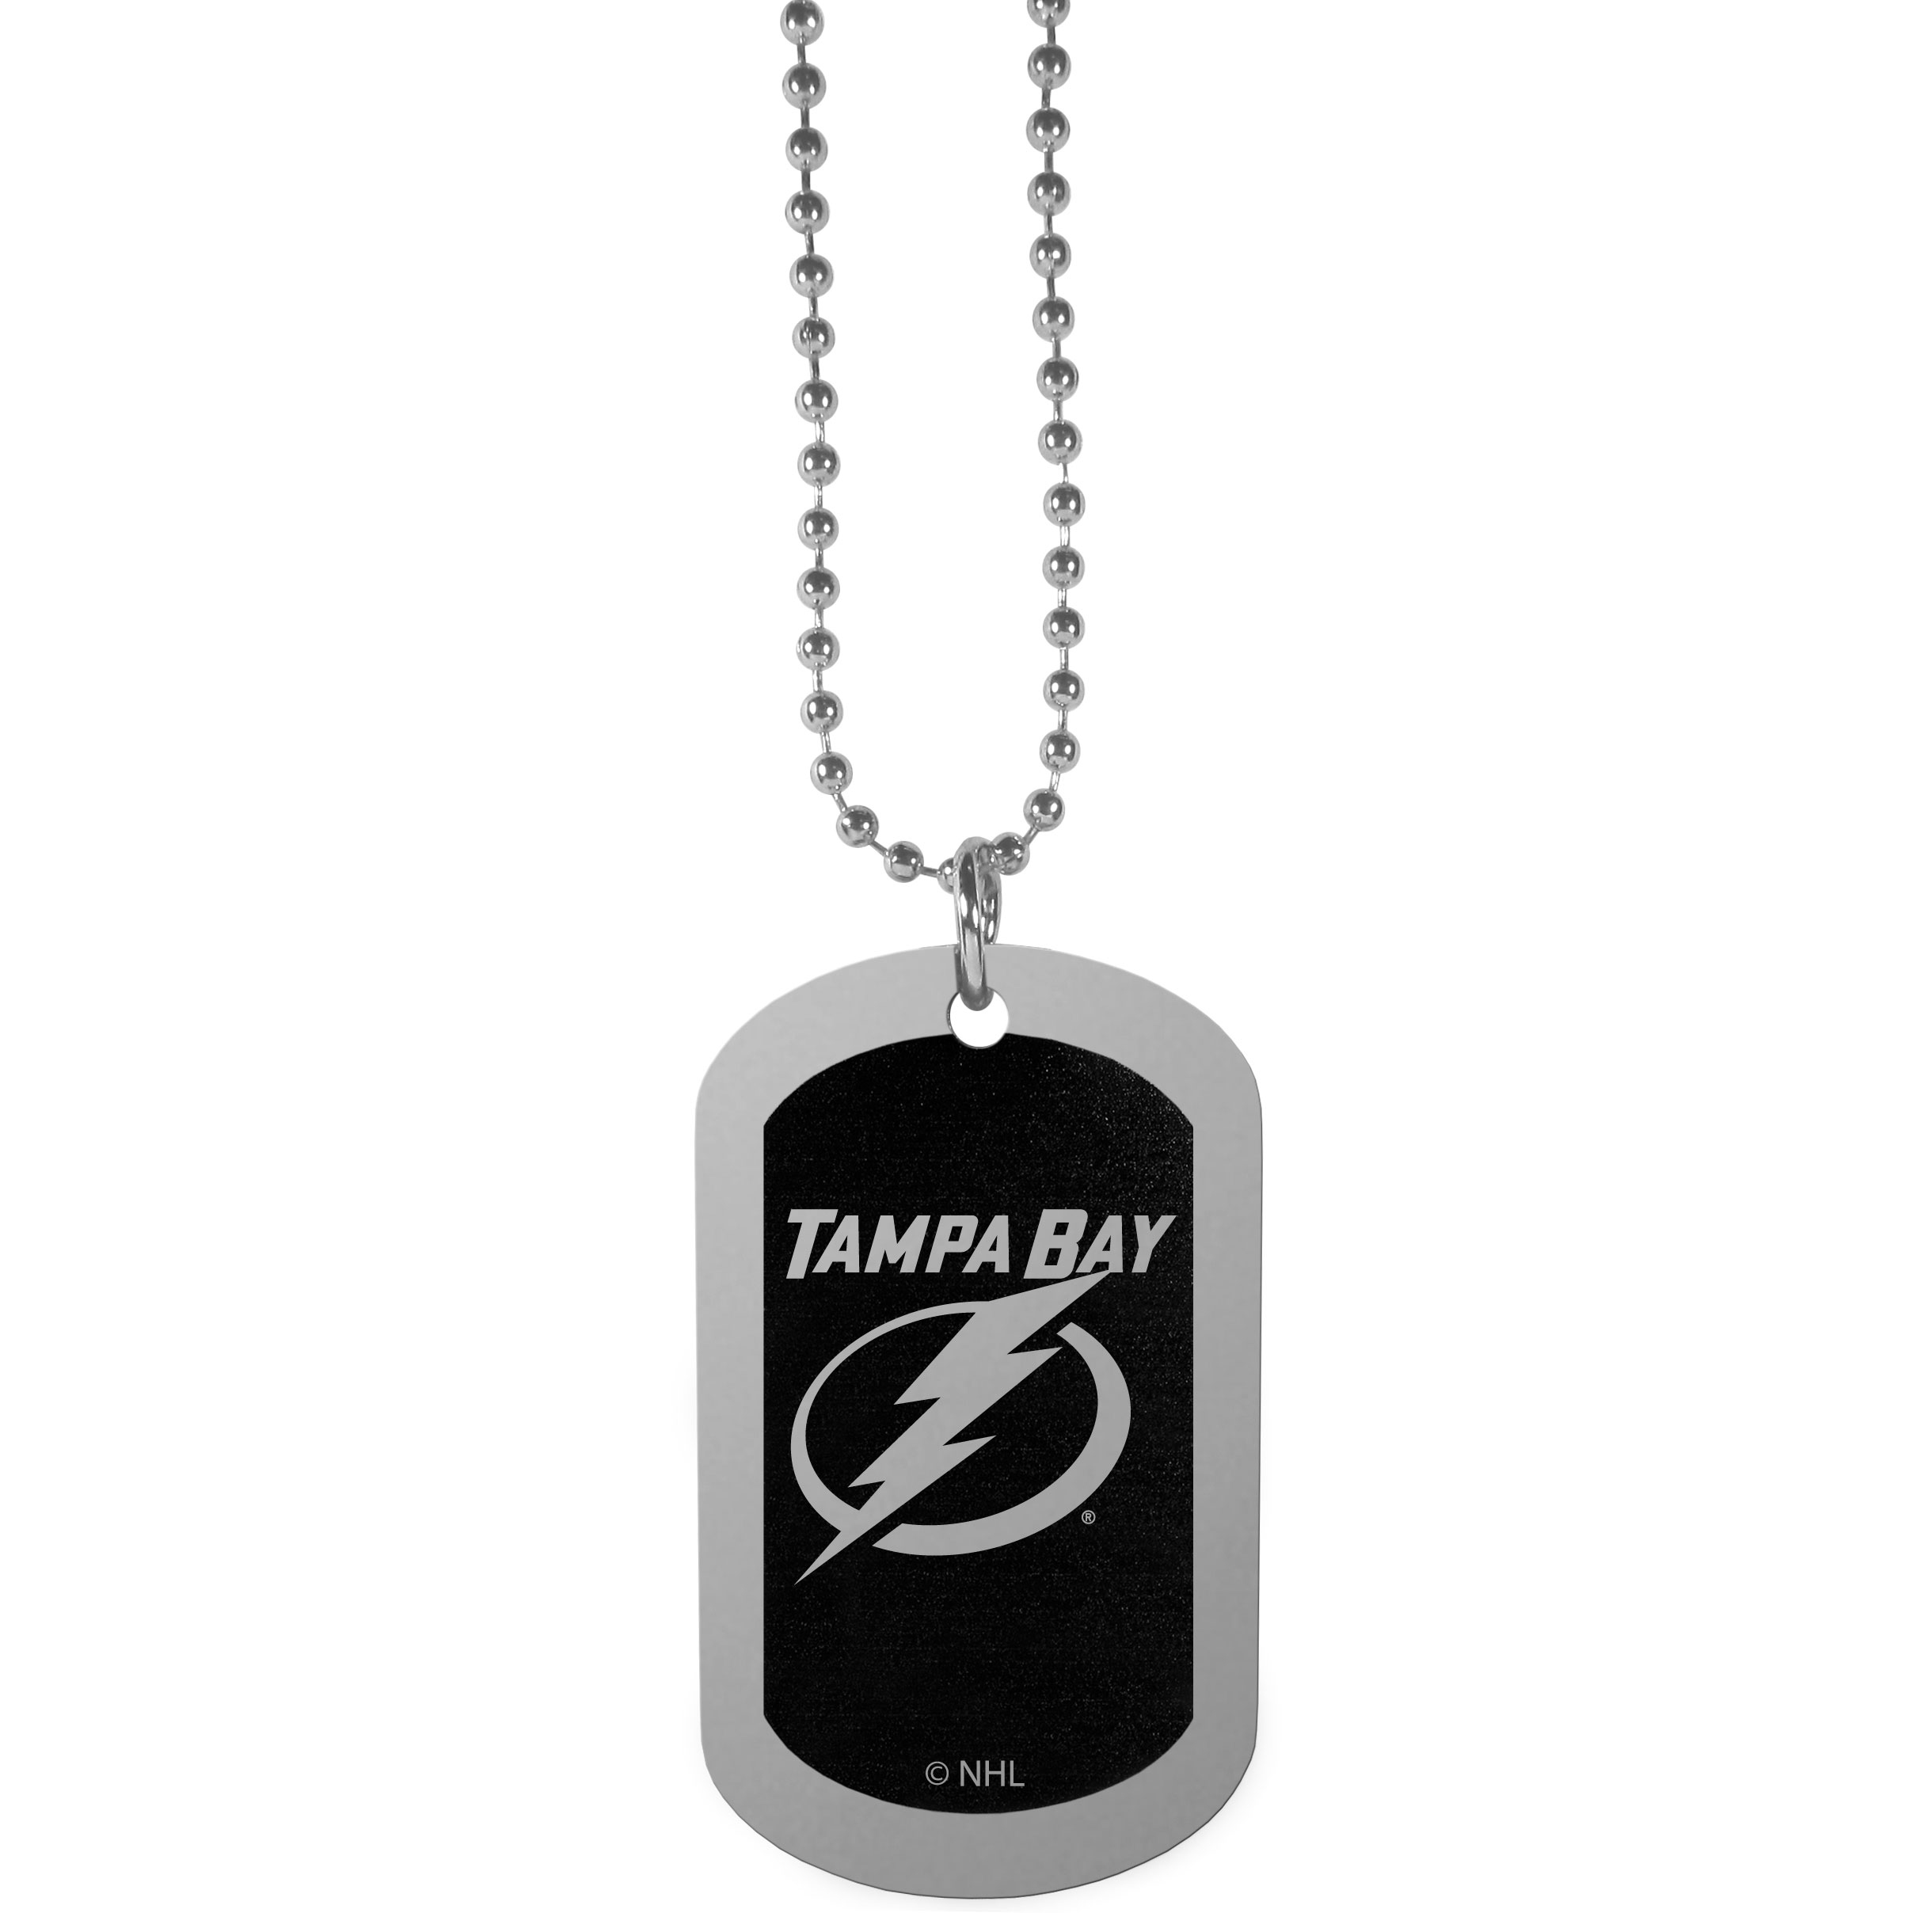 Tampa Bay Lightning® Chrome Tag Necklace - Dog tag necklaces are a fashion statement that is here to stay. The sporty version of the classic tag features a black printed over a high polish tag to create a bold and sporty look. The tag comes on a 26 inch ball chain with a ball and joint clasp. Any Tampa Bay Lightning® would be proud to wear this attractive fashion accessory.